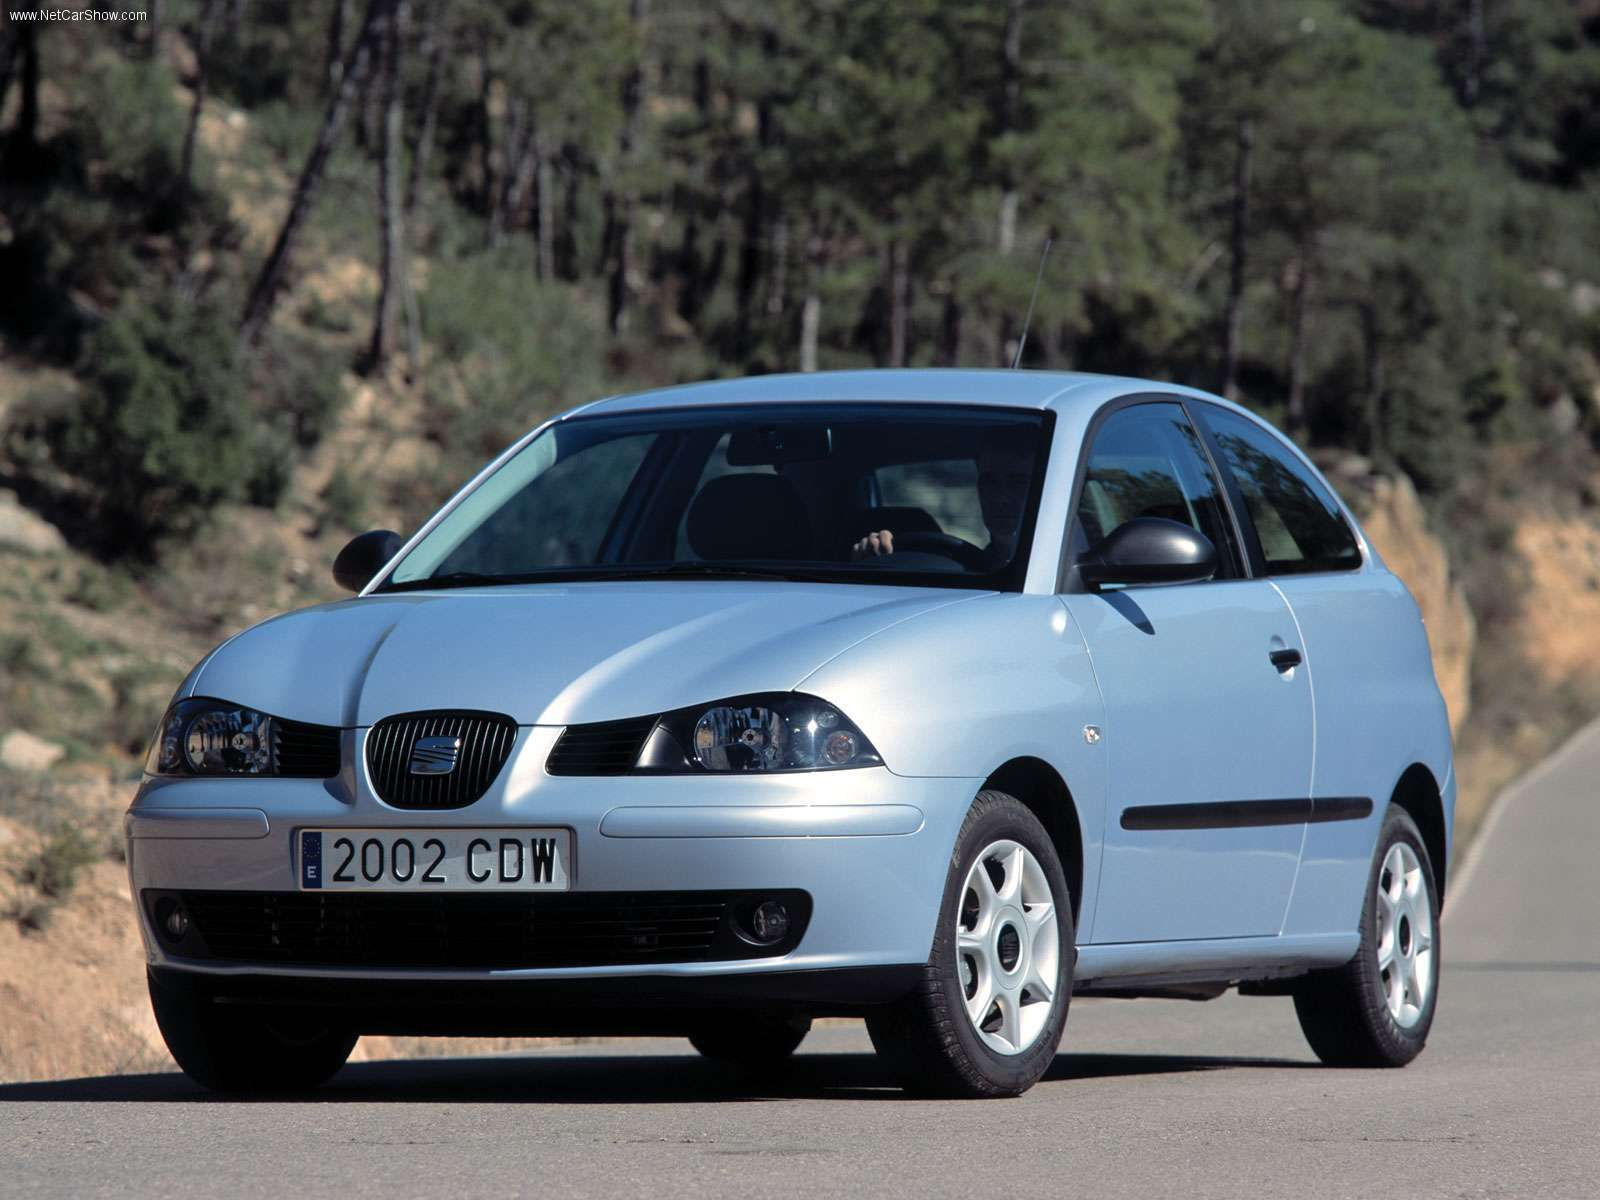 seat ibiza and cordoba 1993 99 service and repair manual haynes service and repair manuals by rendle steve legg a k published by haynes manuals inc 1999